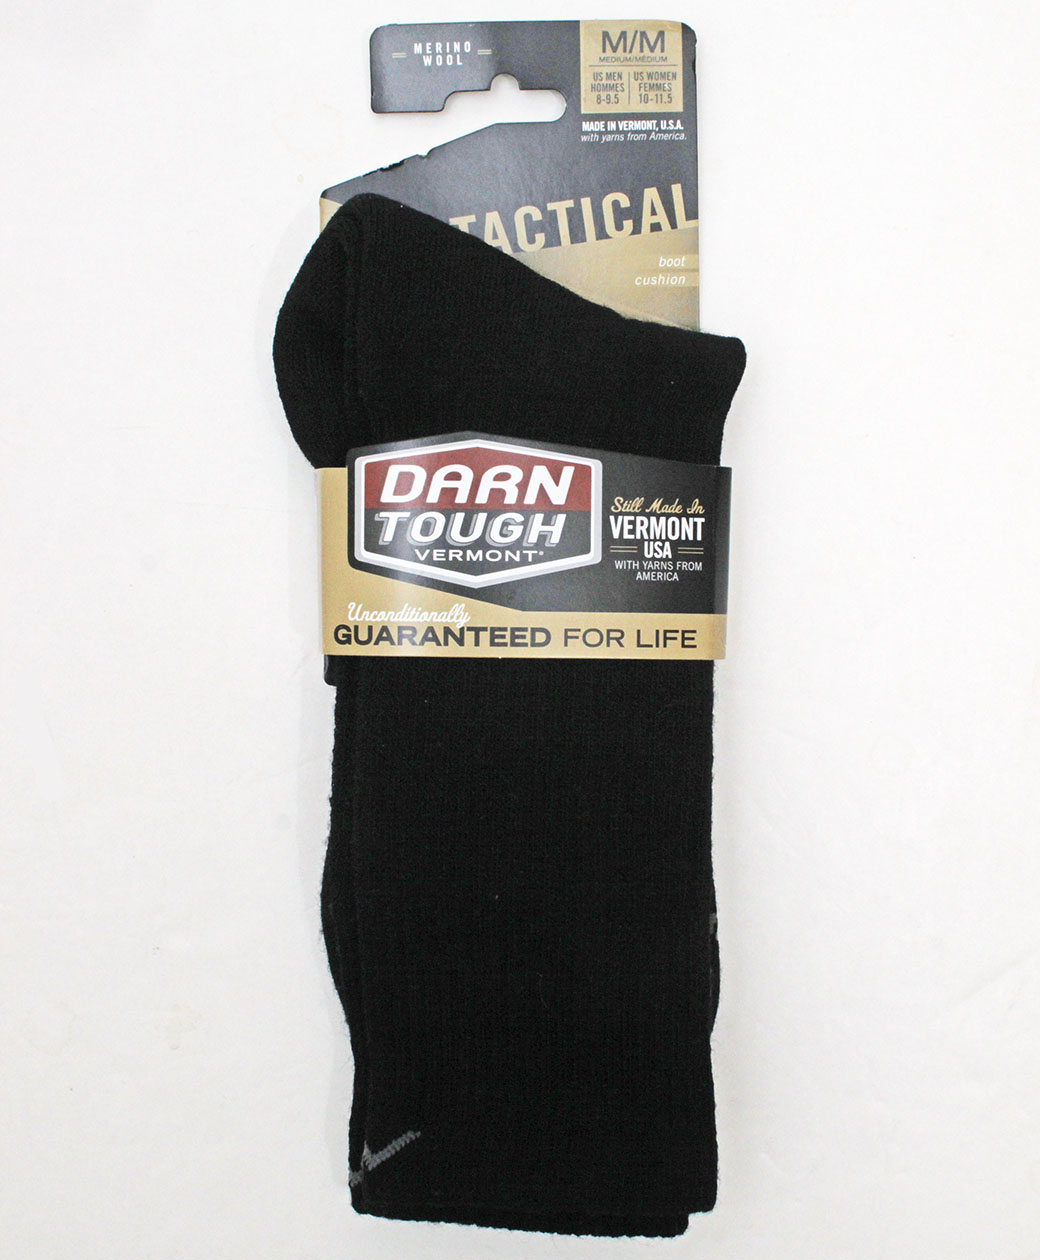 DARN TOUGH VERMONT Tactical Boot Cushion(BLACK)